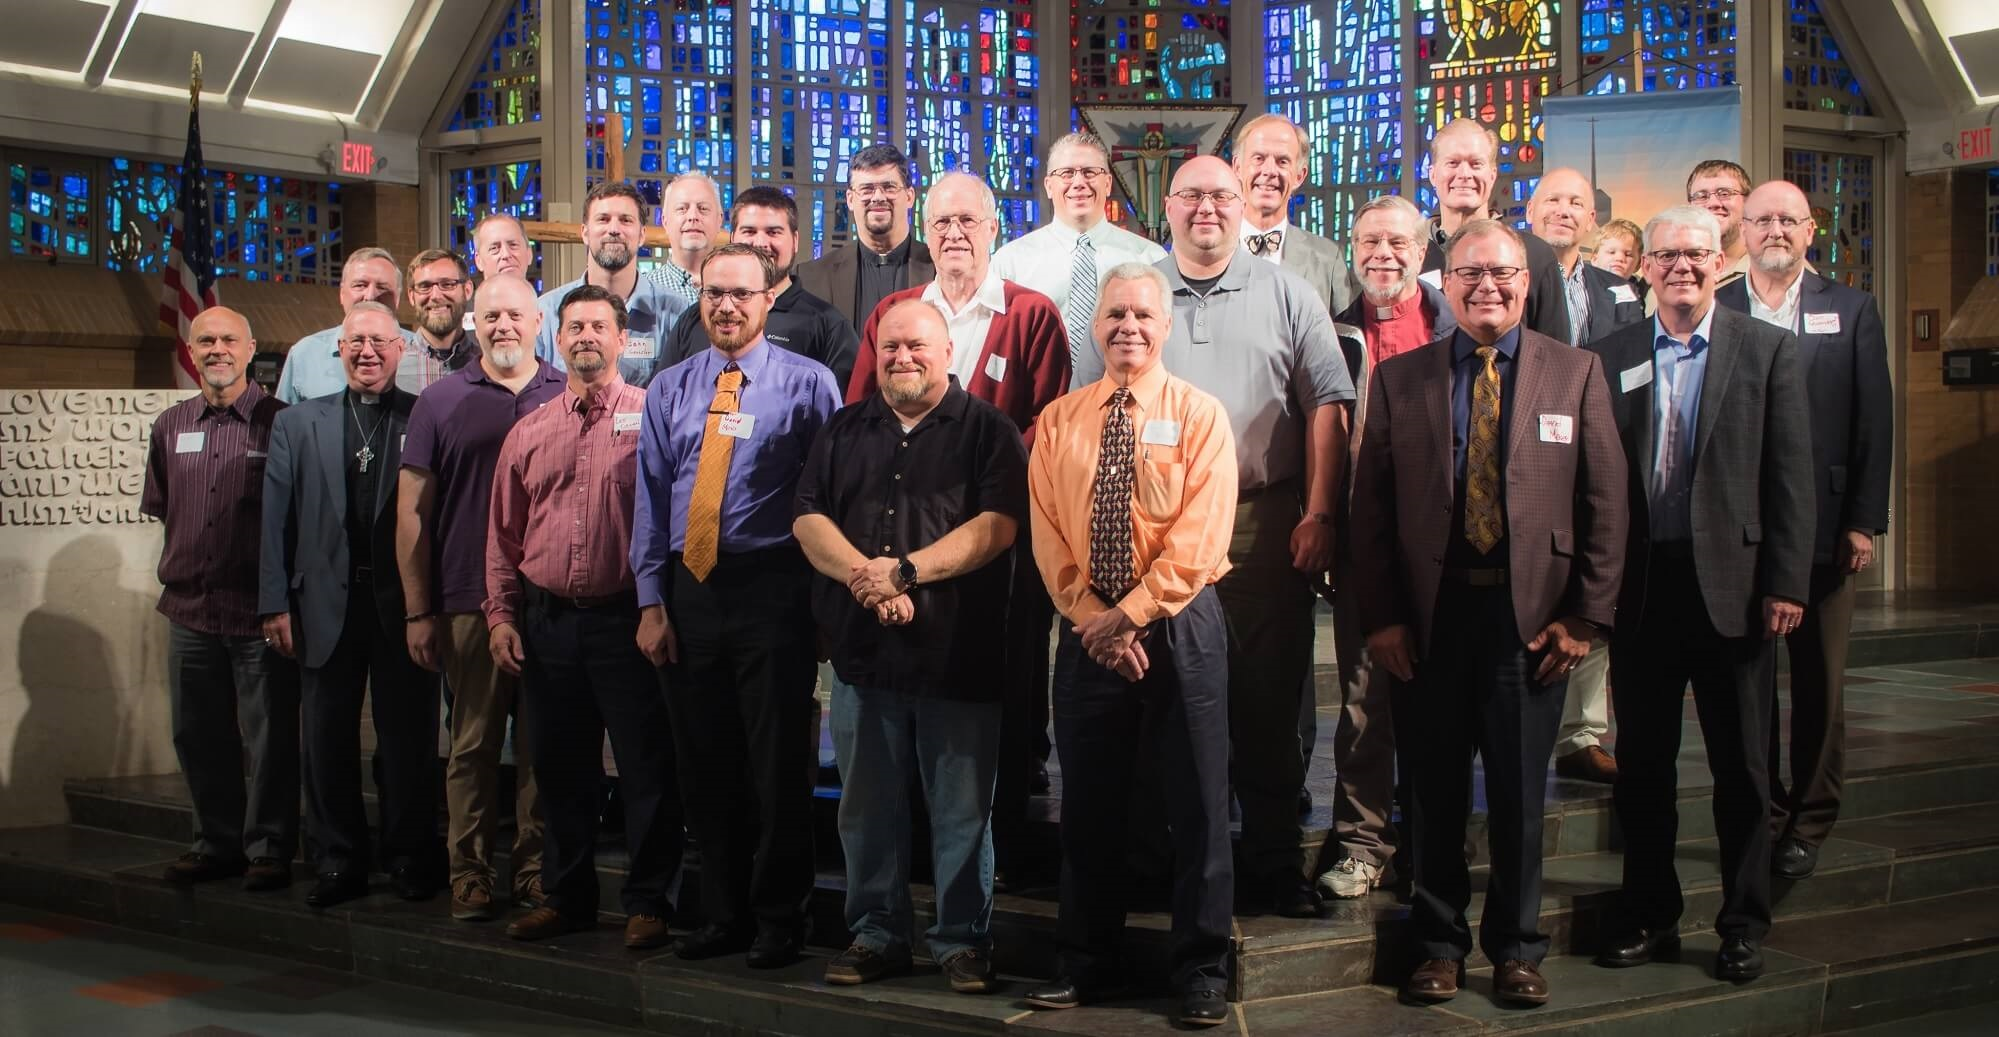 2018 Clergy on Campus